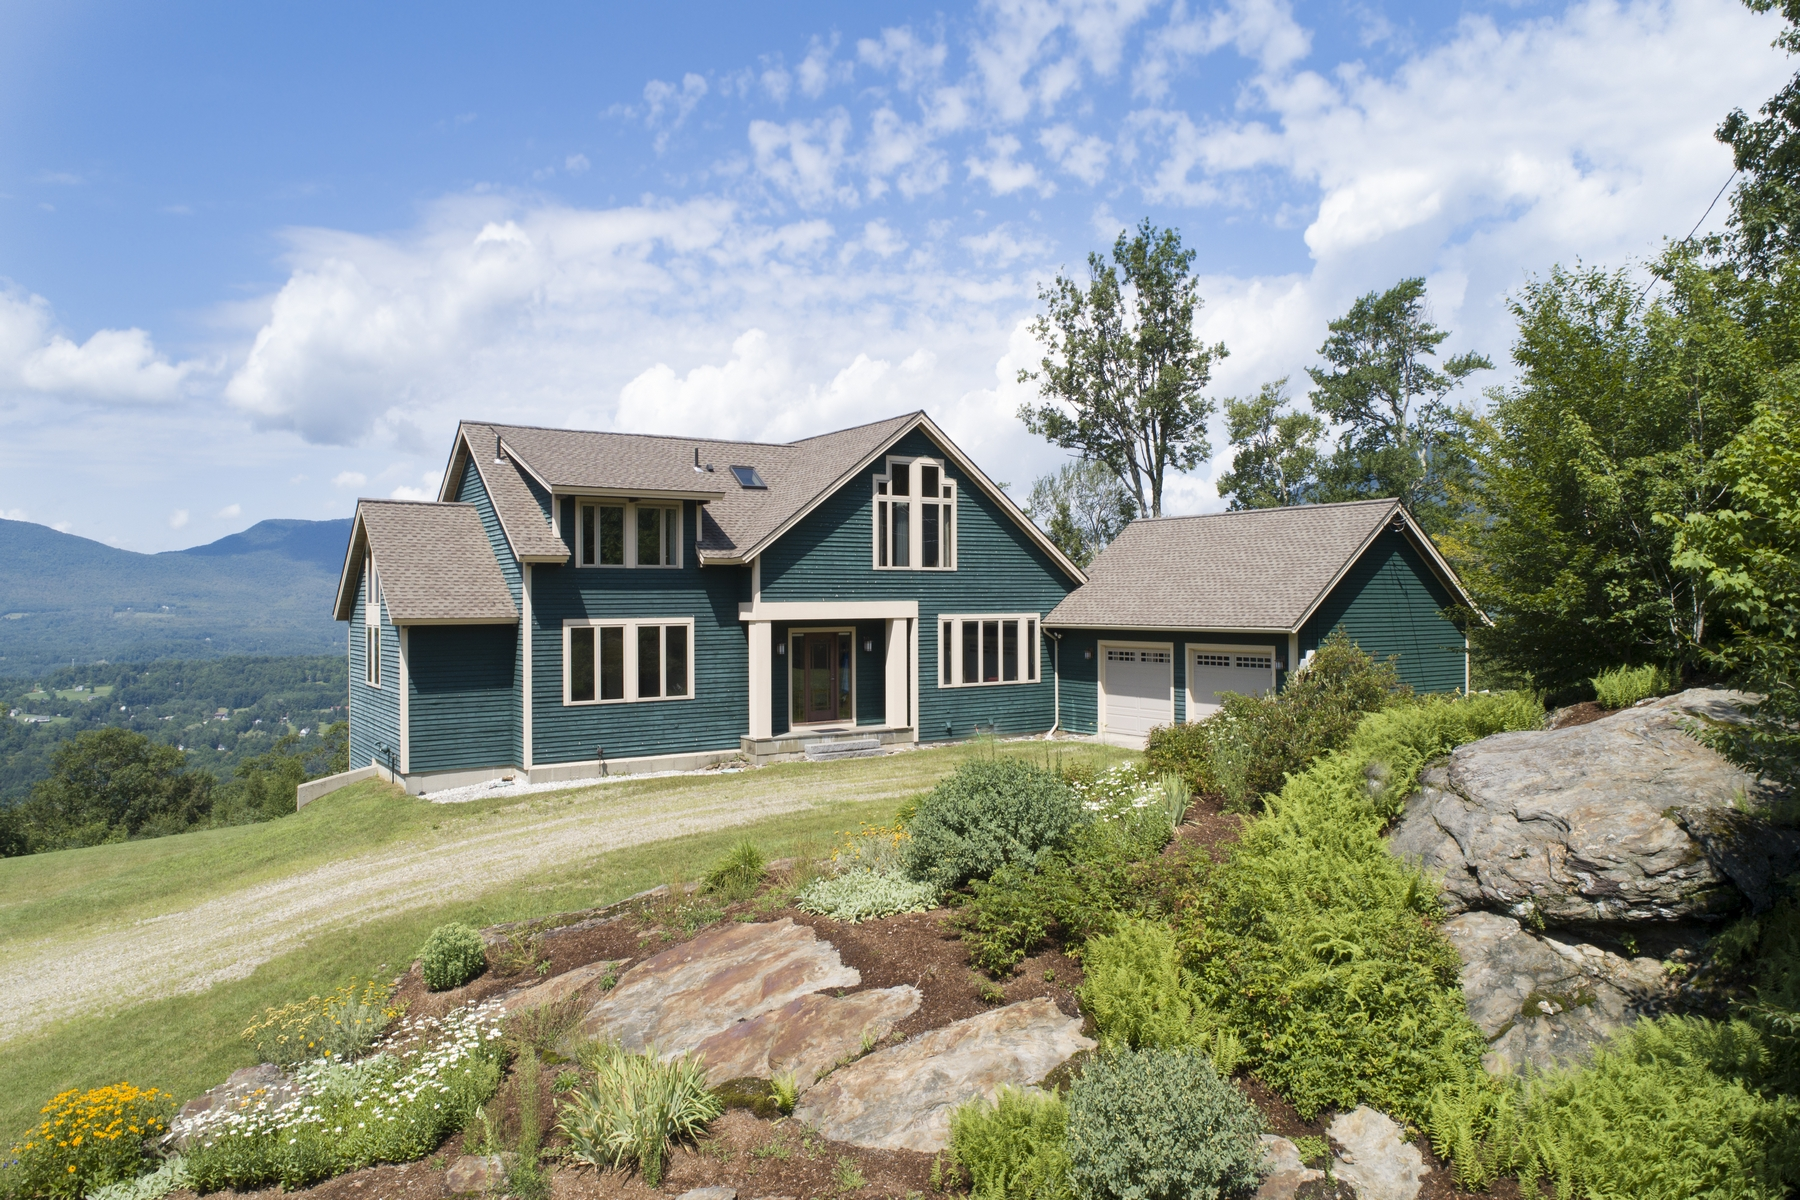 Single Family Home for Sale at 17 Valley View Road, Winhall 17 Valley View Rd Winhall, Vermont 05340 United States